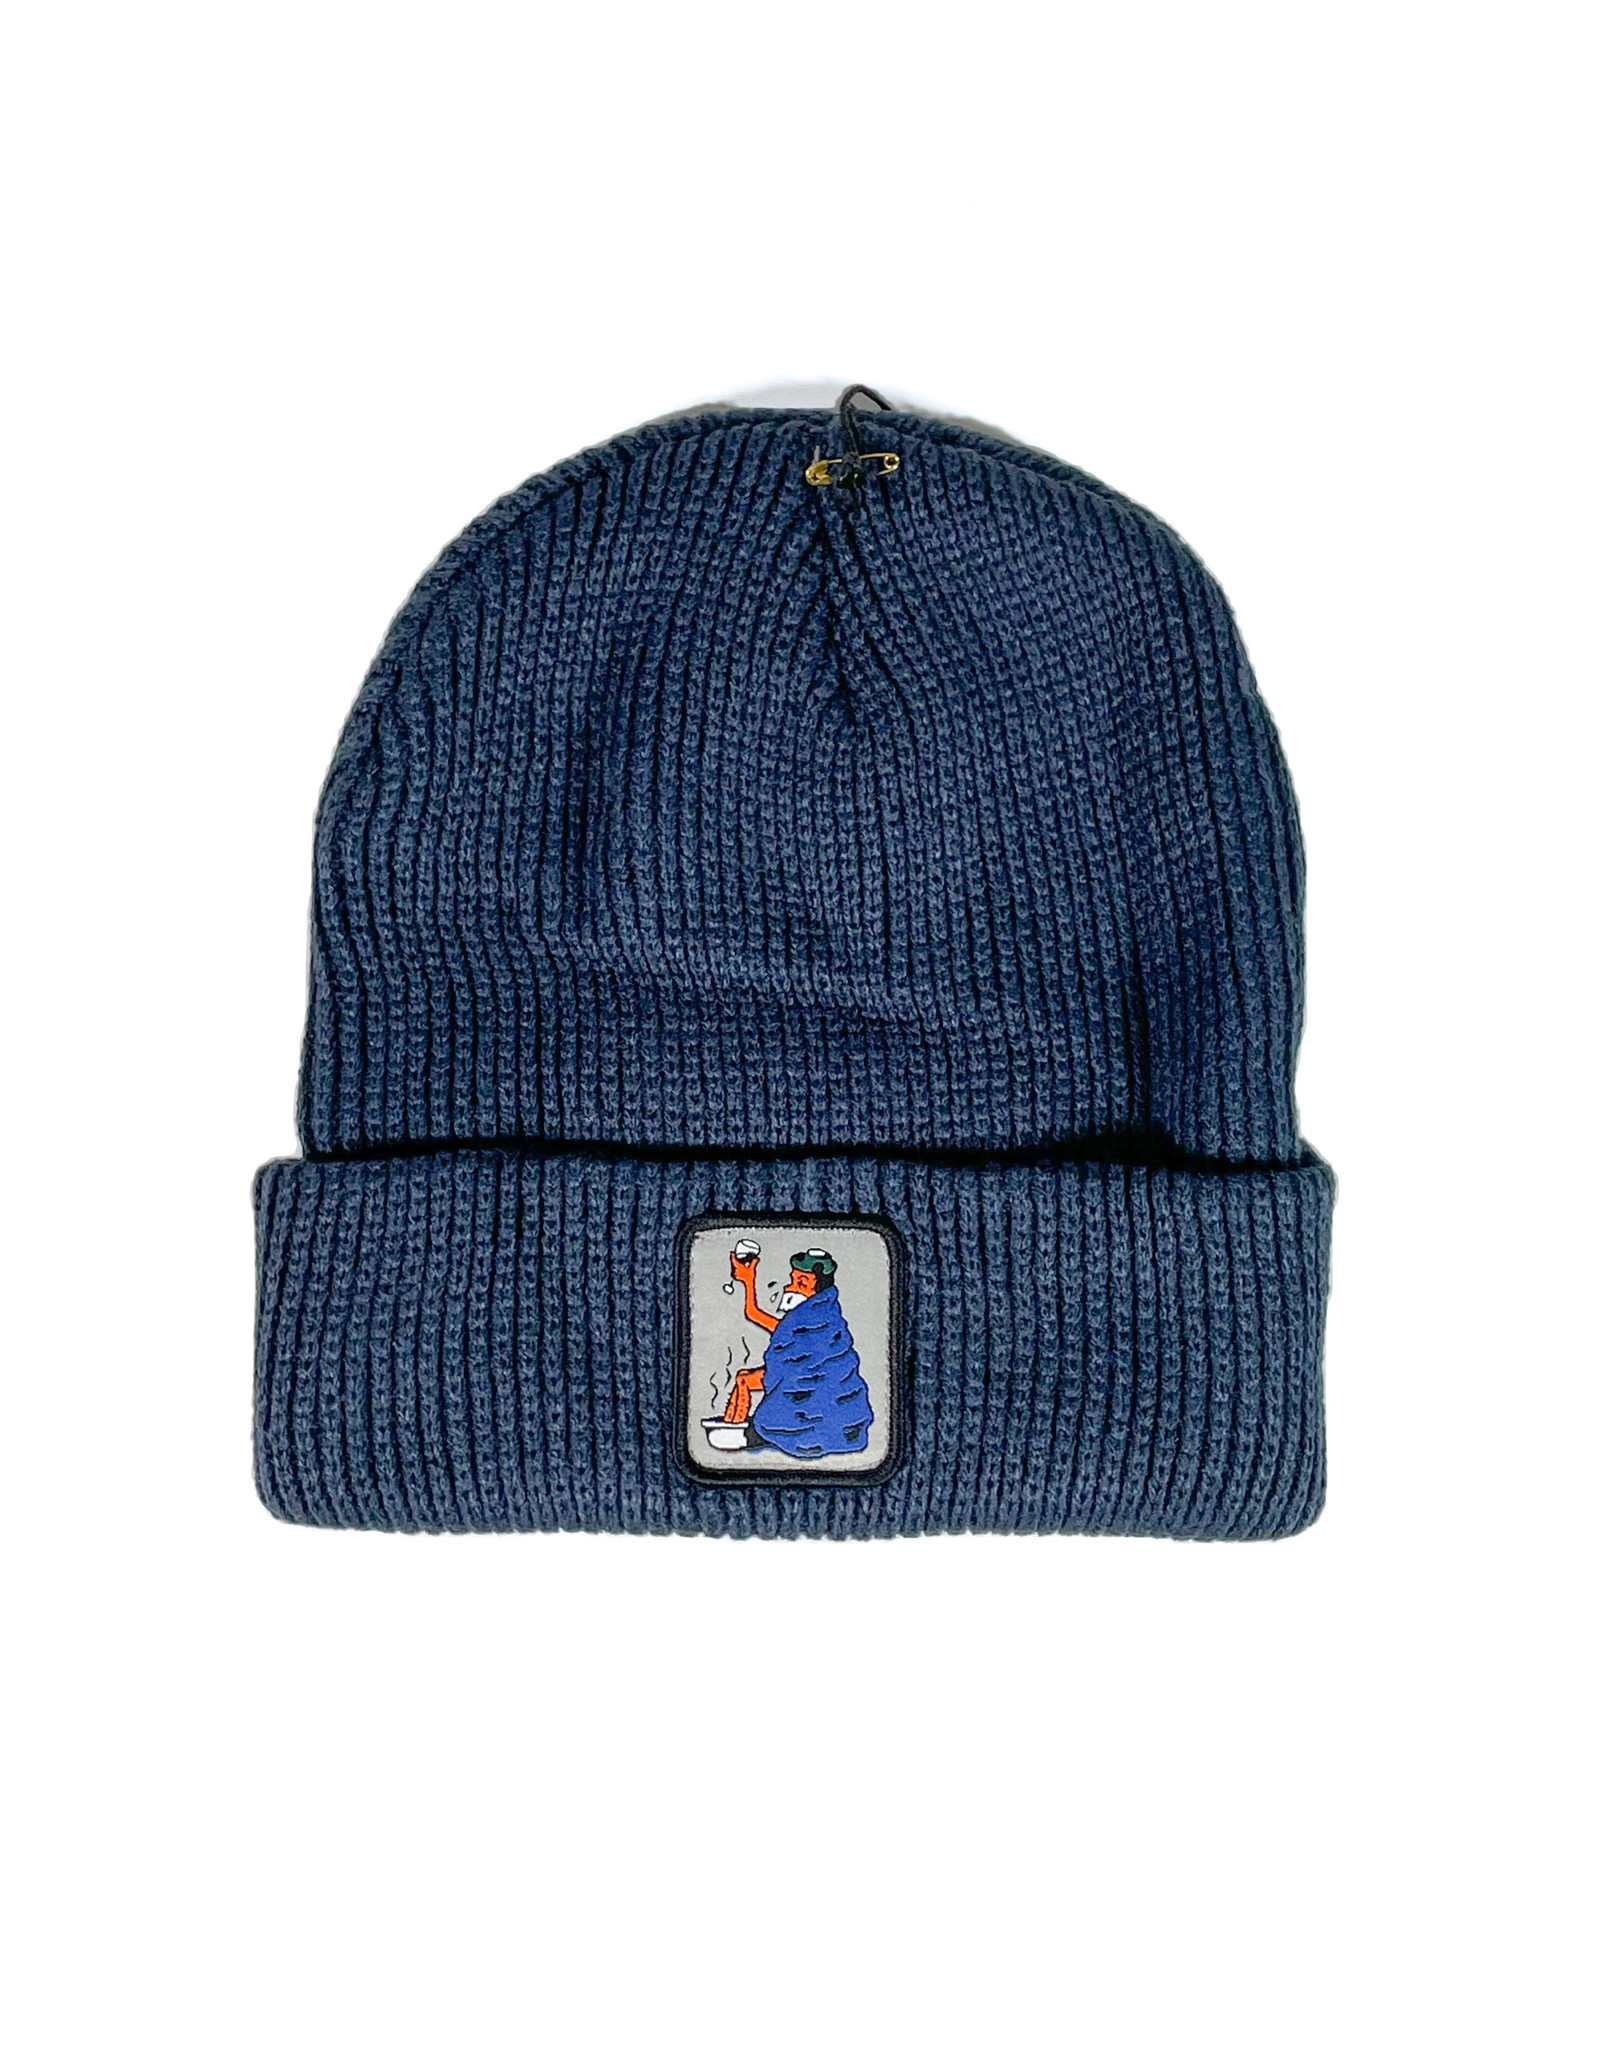 PASSPORT PASS-PORT COLD OUT BEANIE - NAVY